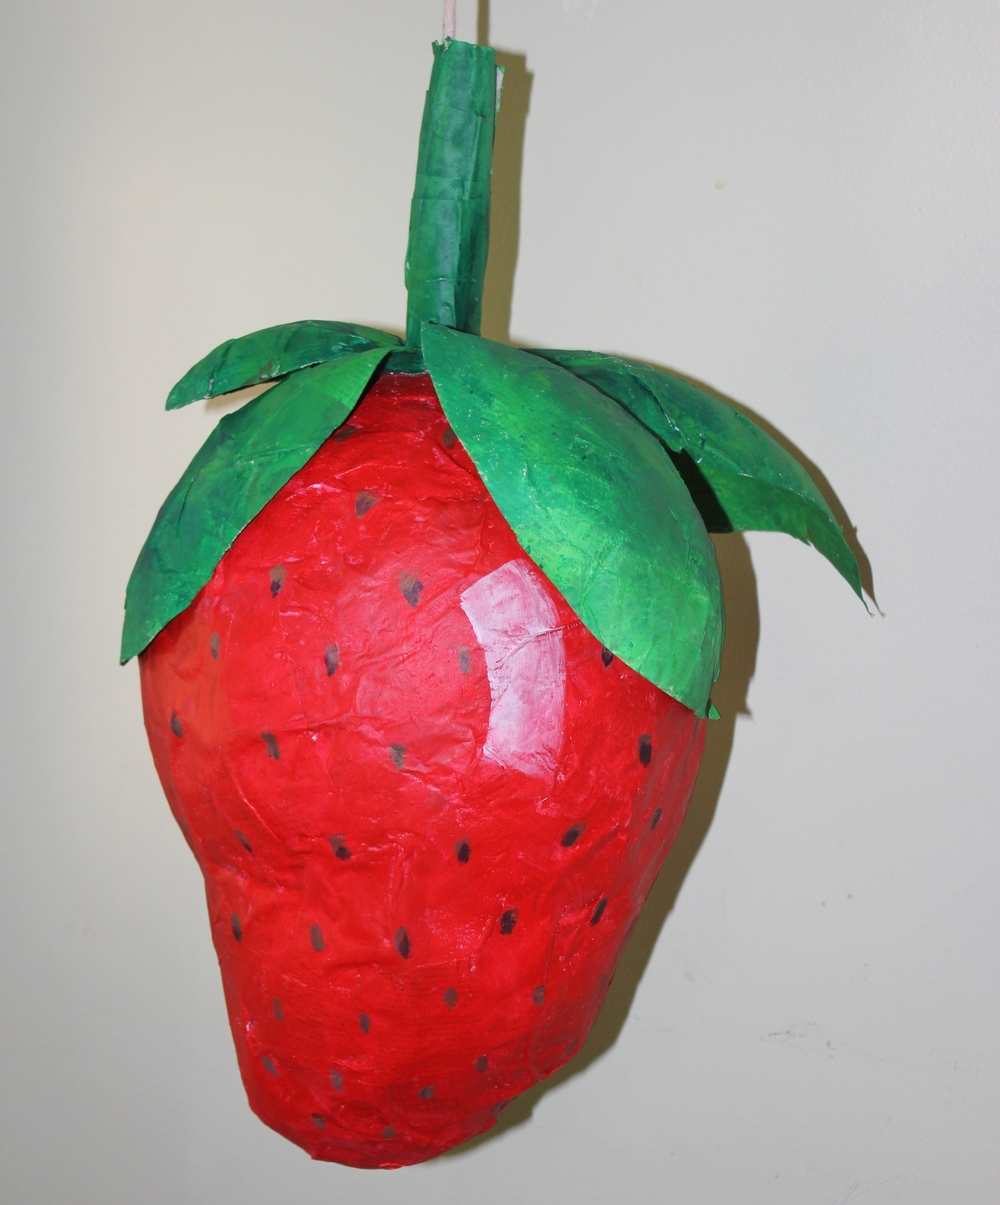 Strawberry Pinata by Nicole K. James